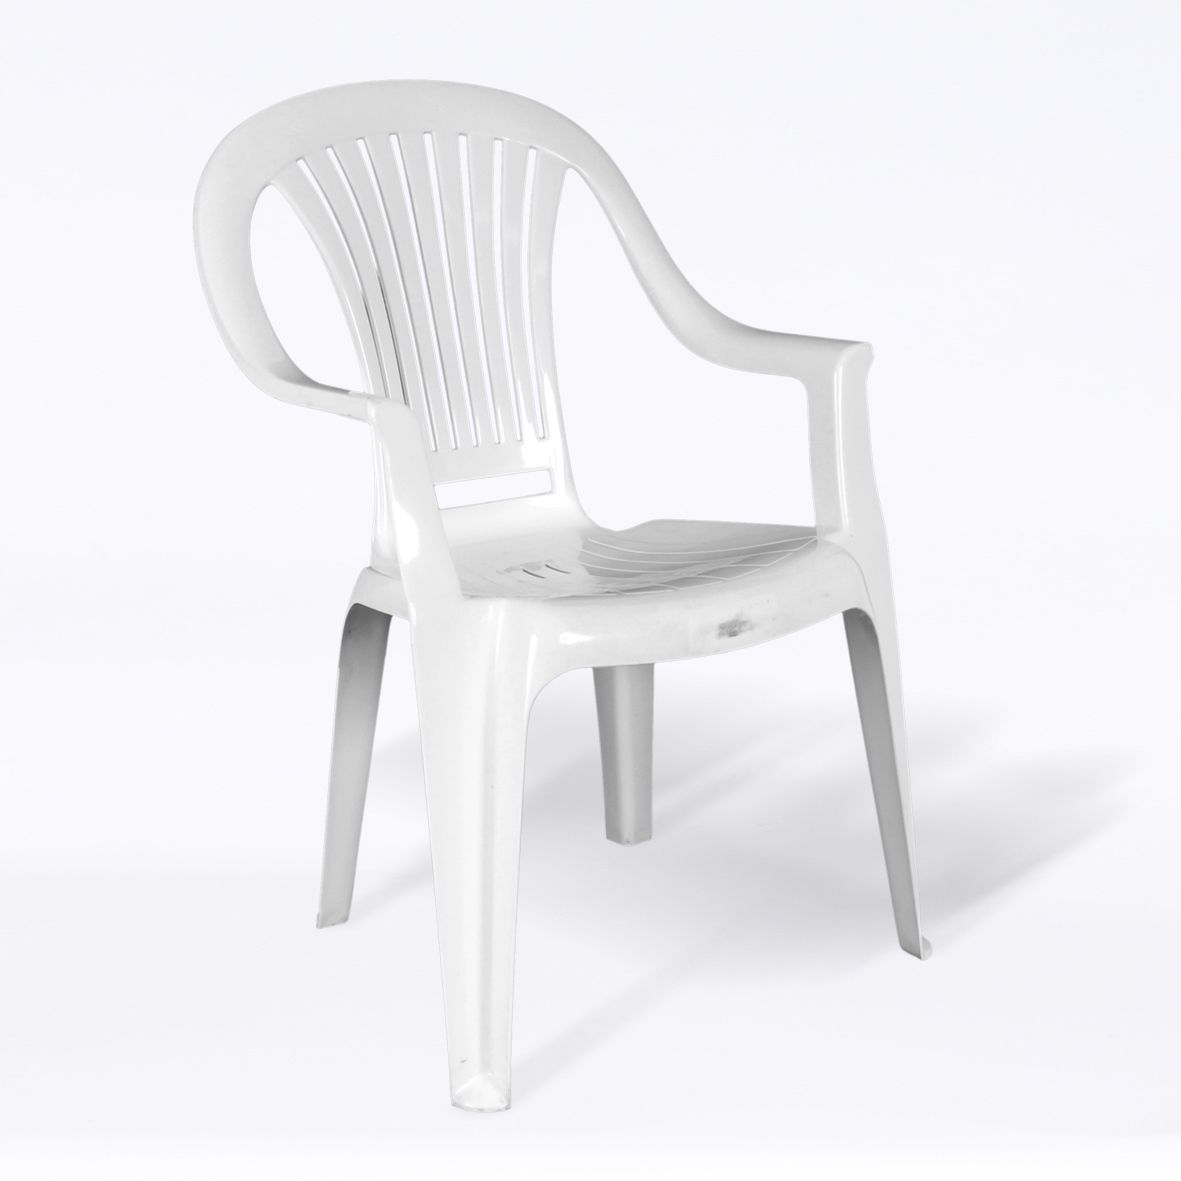 Merveilleux 20 Plastic Outdoor Chairs Walmart   Best Paint For Interior Walls Check  More At Http: